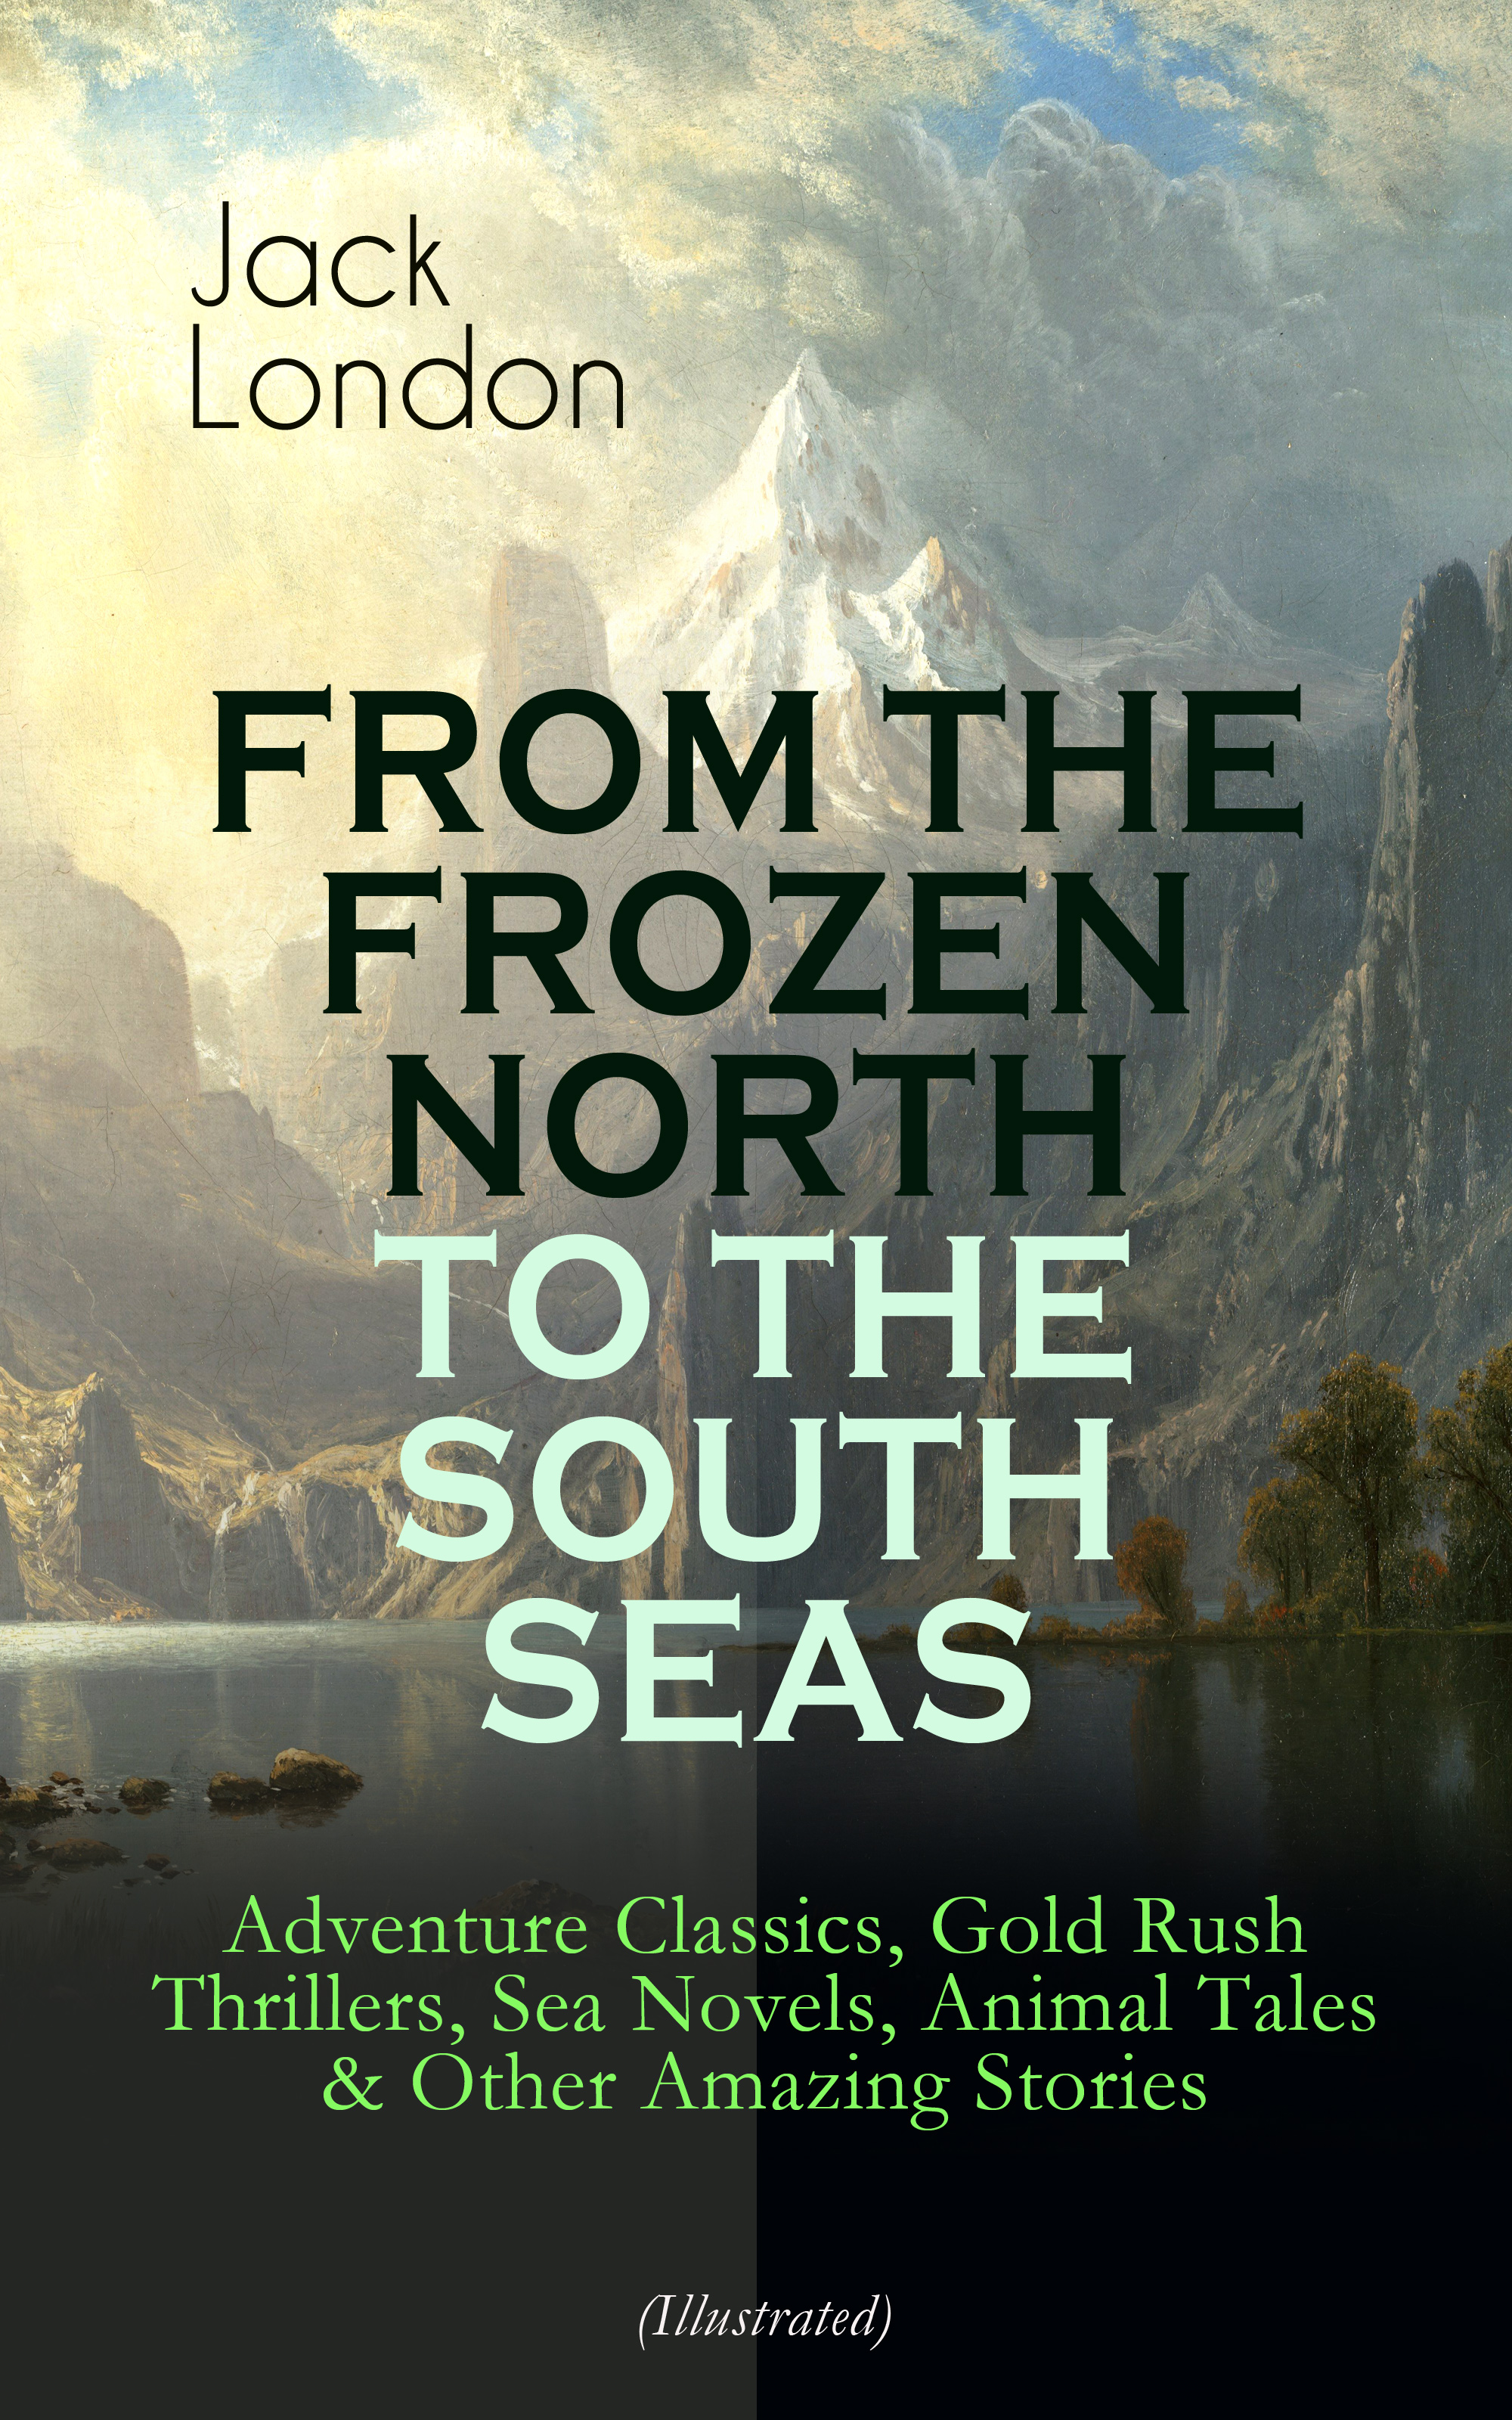 Jack London FROM THE FROZEN NORTH TO THE SOUTH SEAS – Adventure Classics (Illustrated) the democratic developmental state north south perspectives